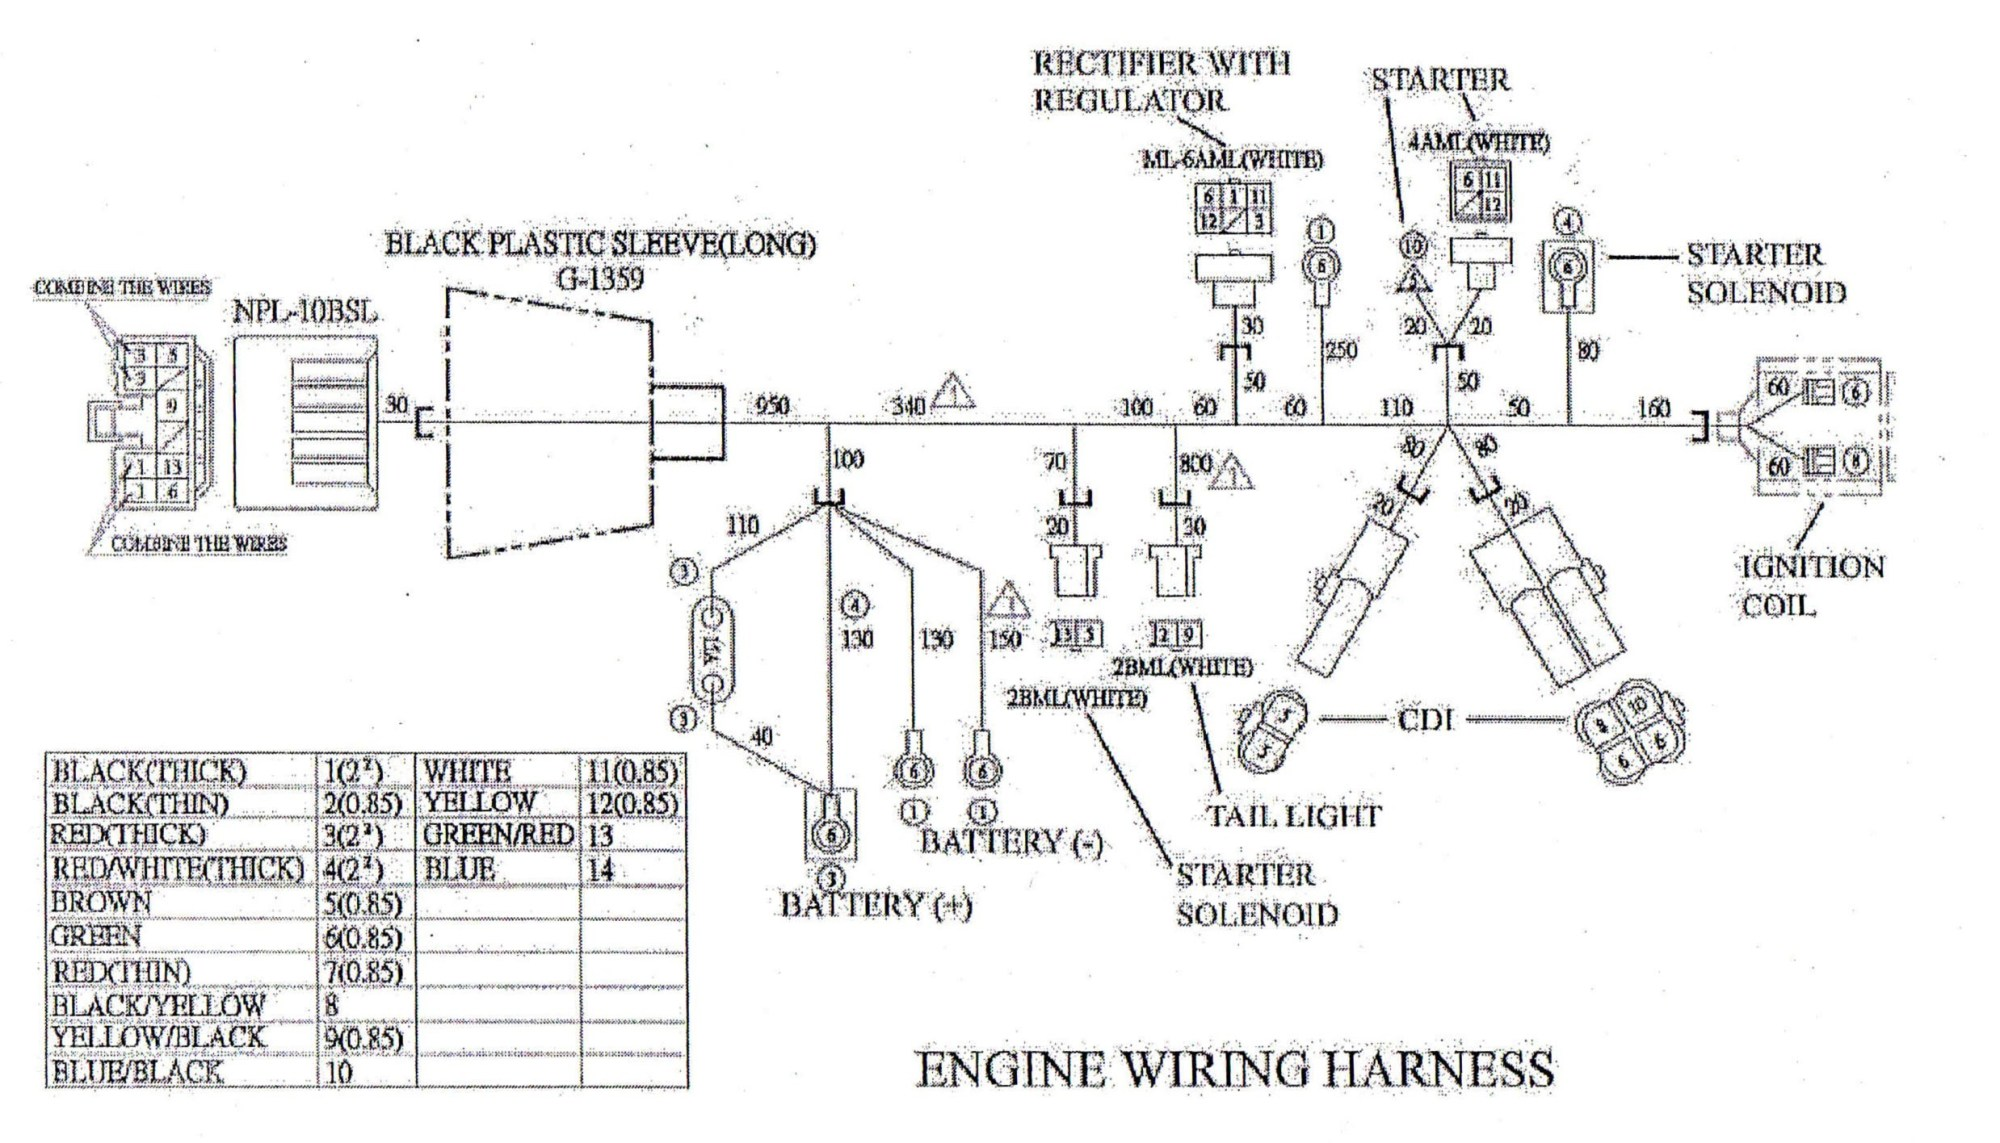 hight resolution of wrg 4669 l5 20 wiring diagraml520 wiring diagram wiring diagram schematics rh alfrescosolutions co l520